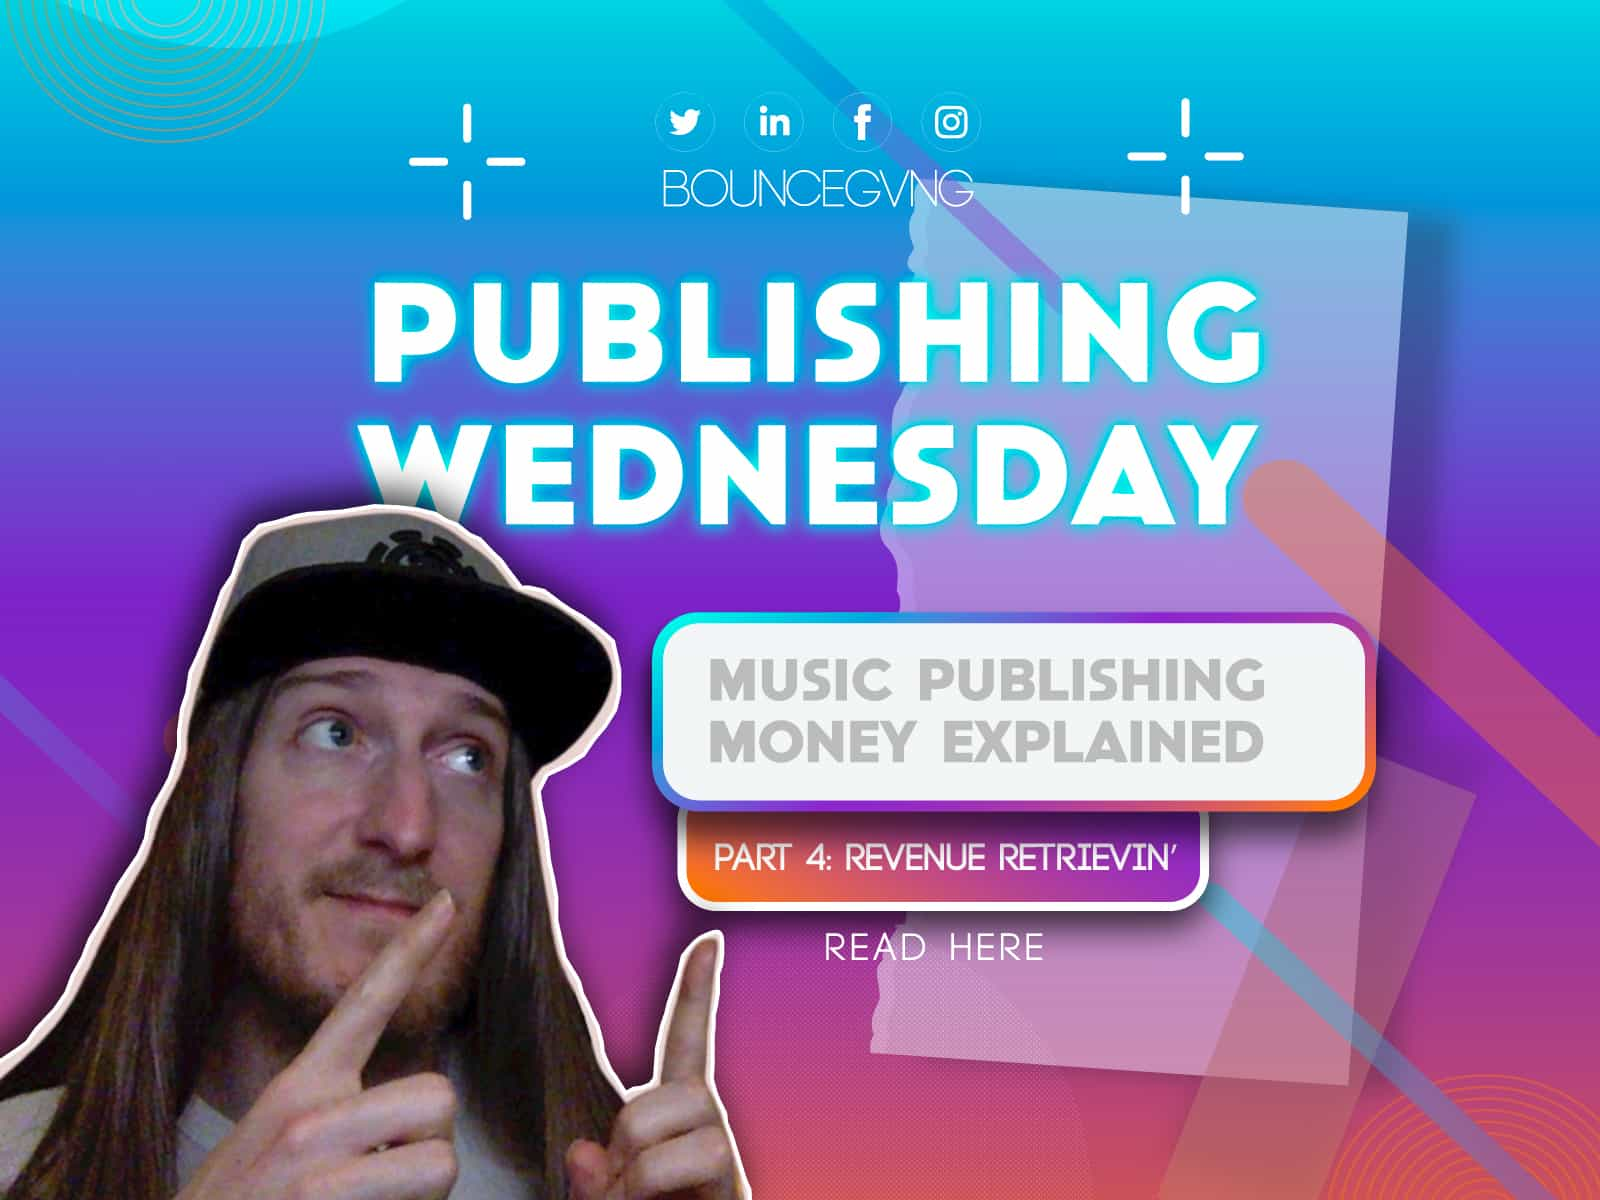 Music Publishing Money Explained pt. 4: Revenue Retrievin'